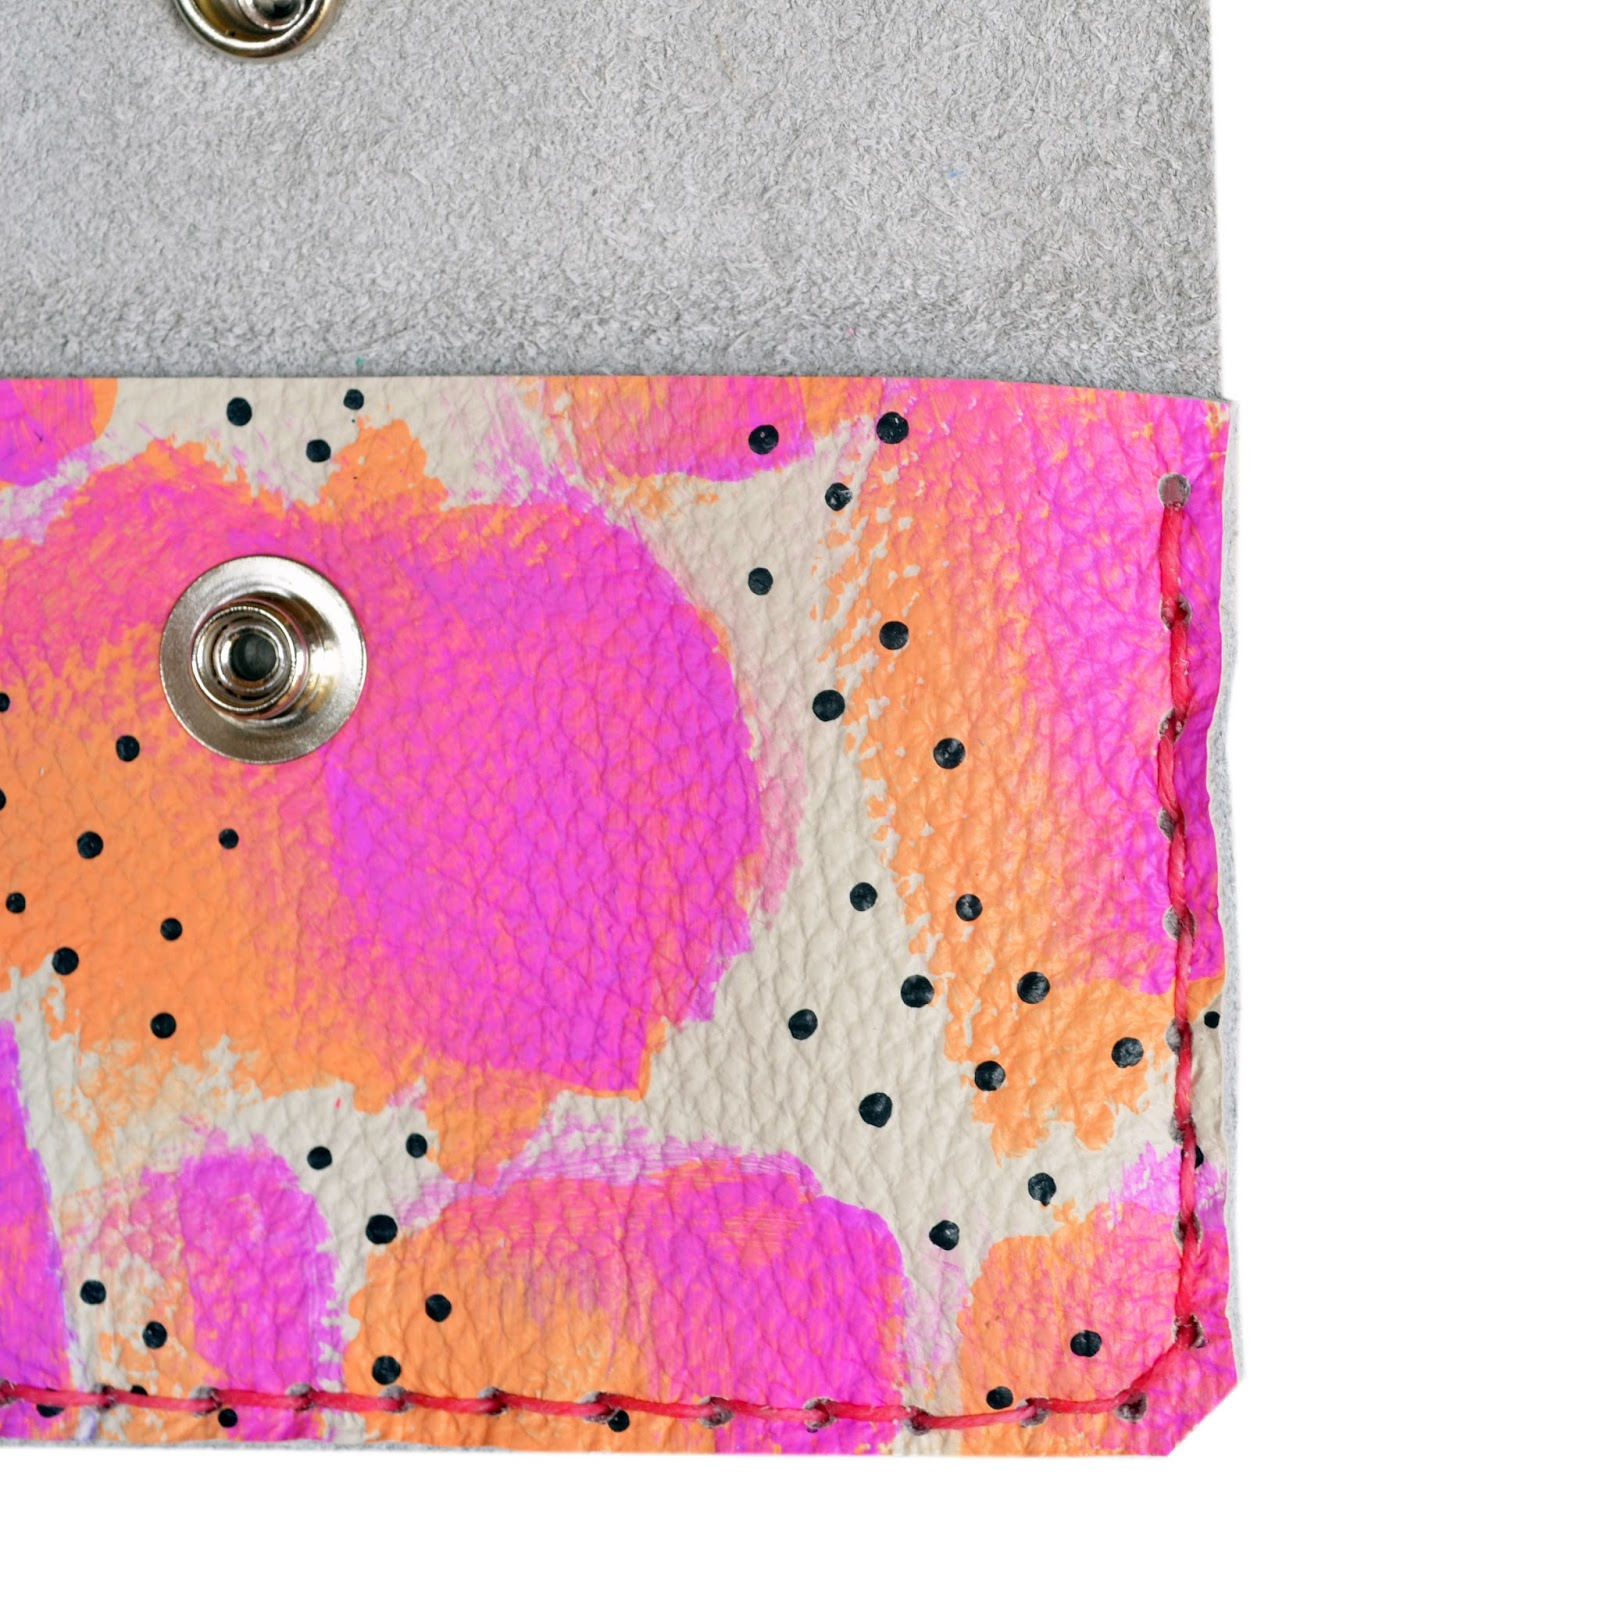 Boo and Boo Factory: New Handmade Colorful Painted Leather Wallets ...